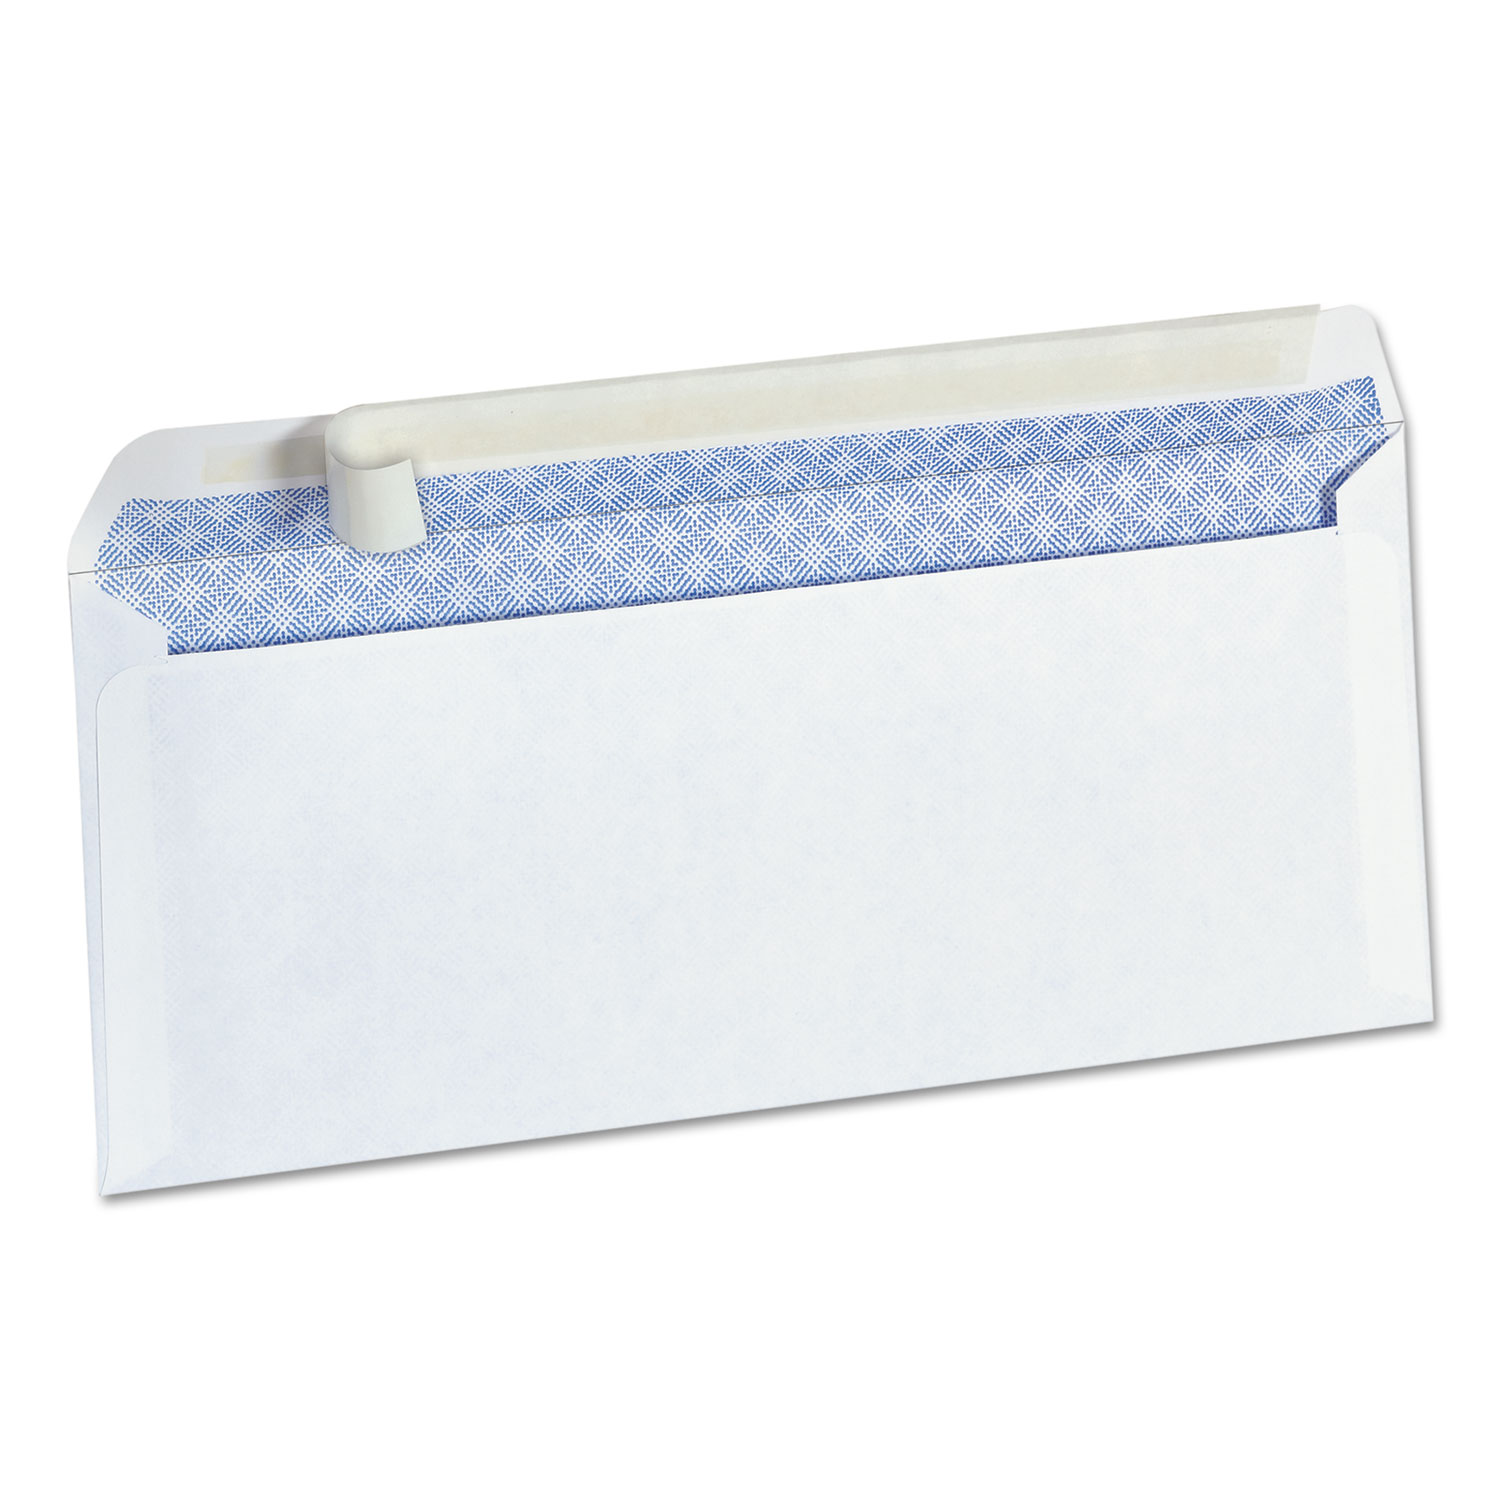 Peel Seal Strip Business Envelope, #10, Square Flap, Self-Adhesive Closure, 4.13 x 9.5, White, 100/Box